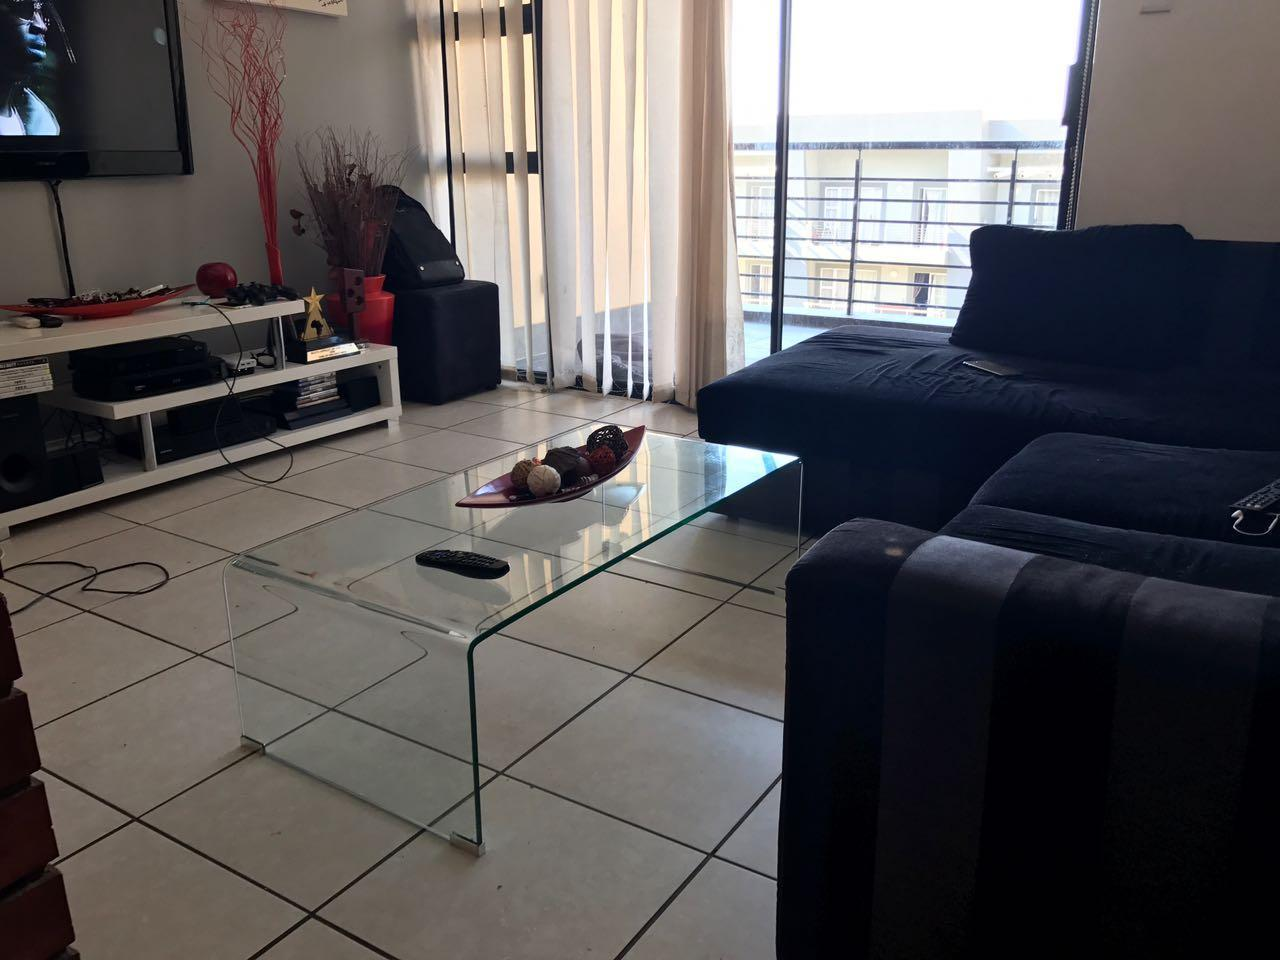 2 Bedroom Apartment for sale in Umhlanga Ridge 1801726 : photo#3